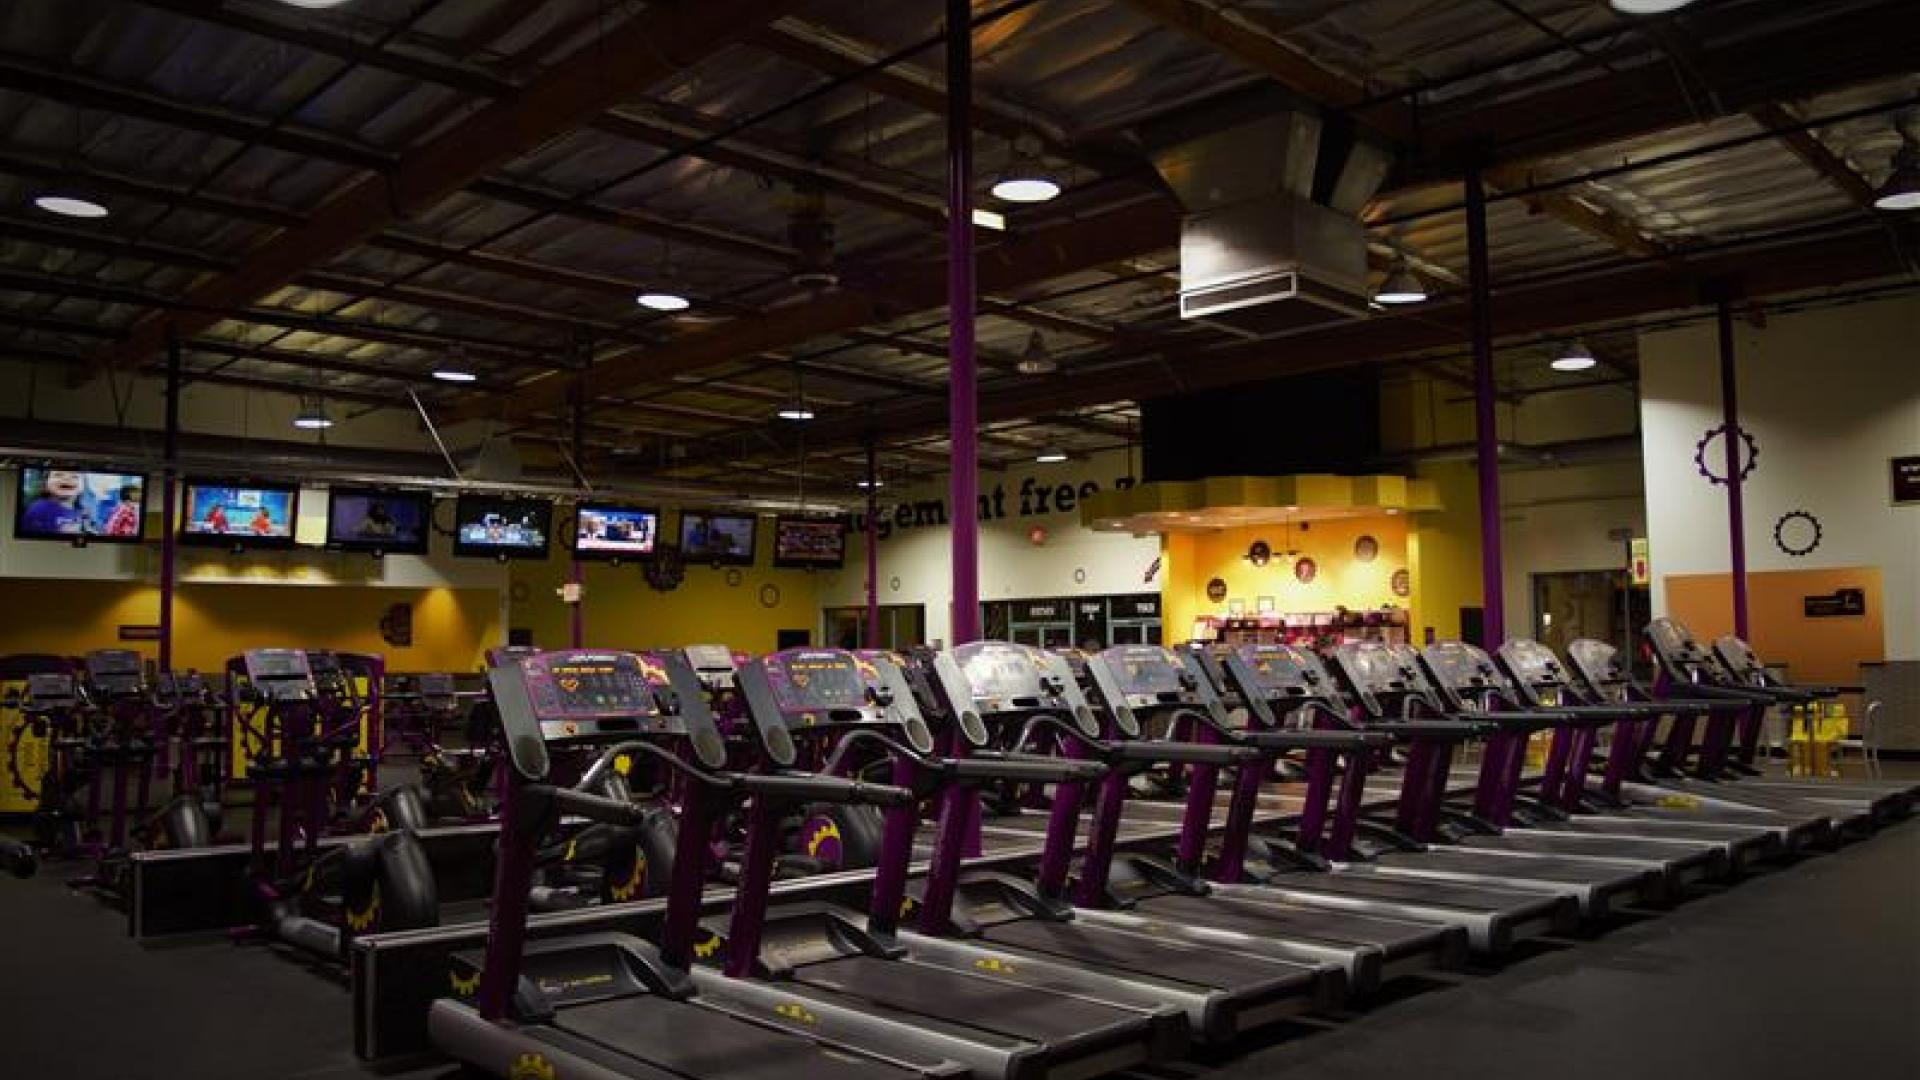 Gym in Hemet CA  1300 E Florida Ave  Planet Fitness